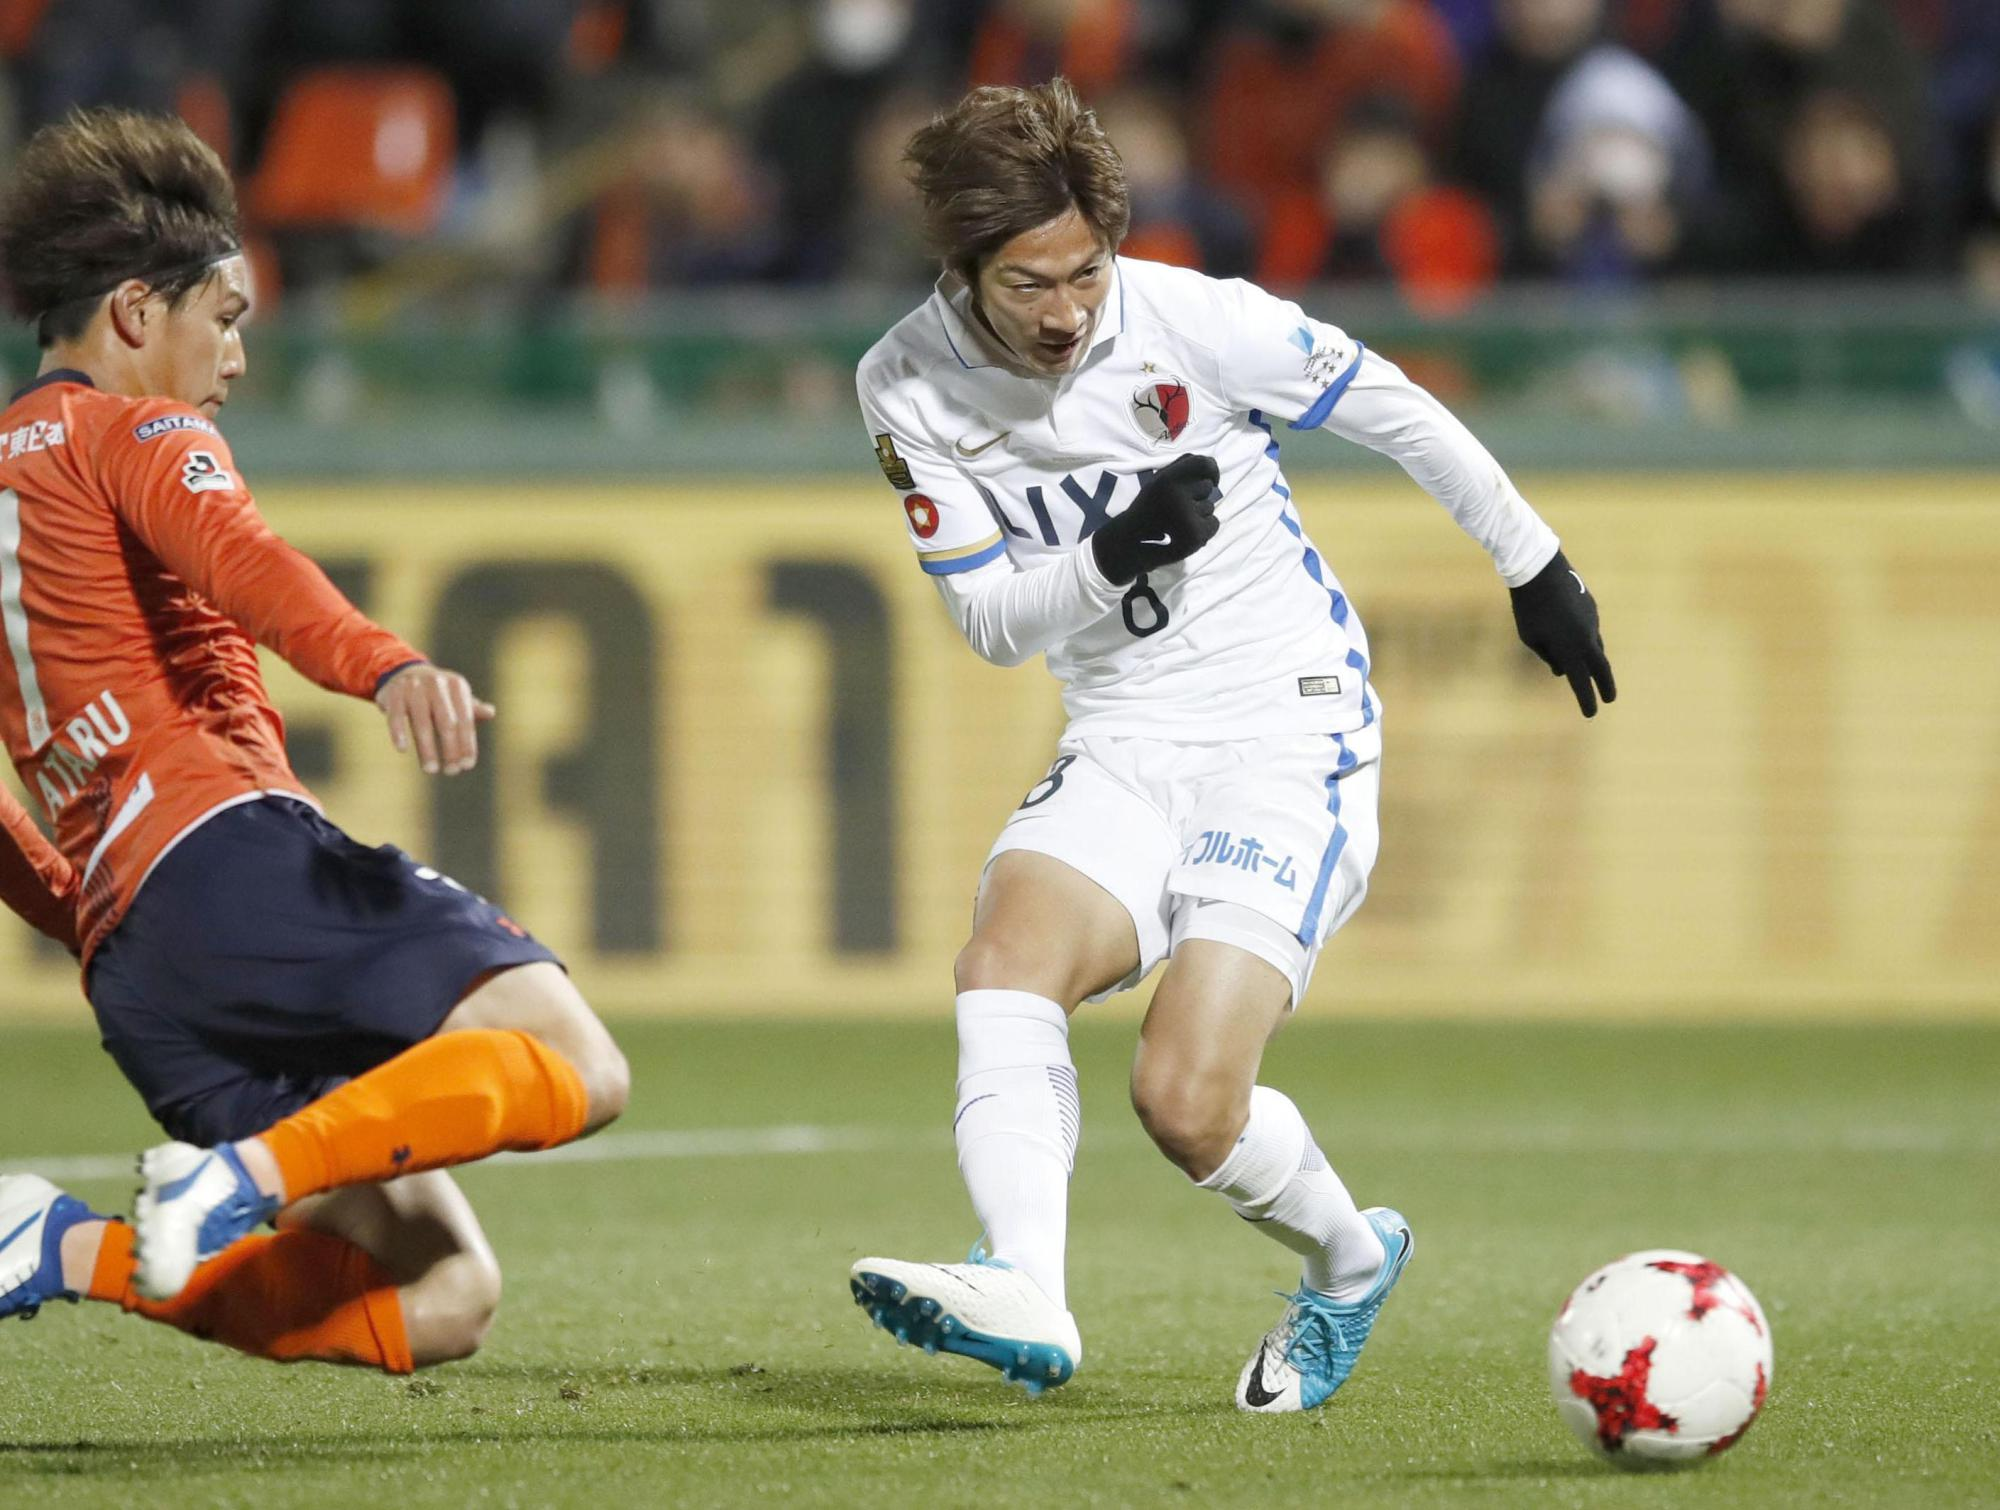 Kashima's Shoma Doi scores the match's only goal in the 79th minute against Omiya at Nack 5 Stadium on Saturday night.   KYODO